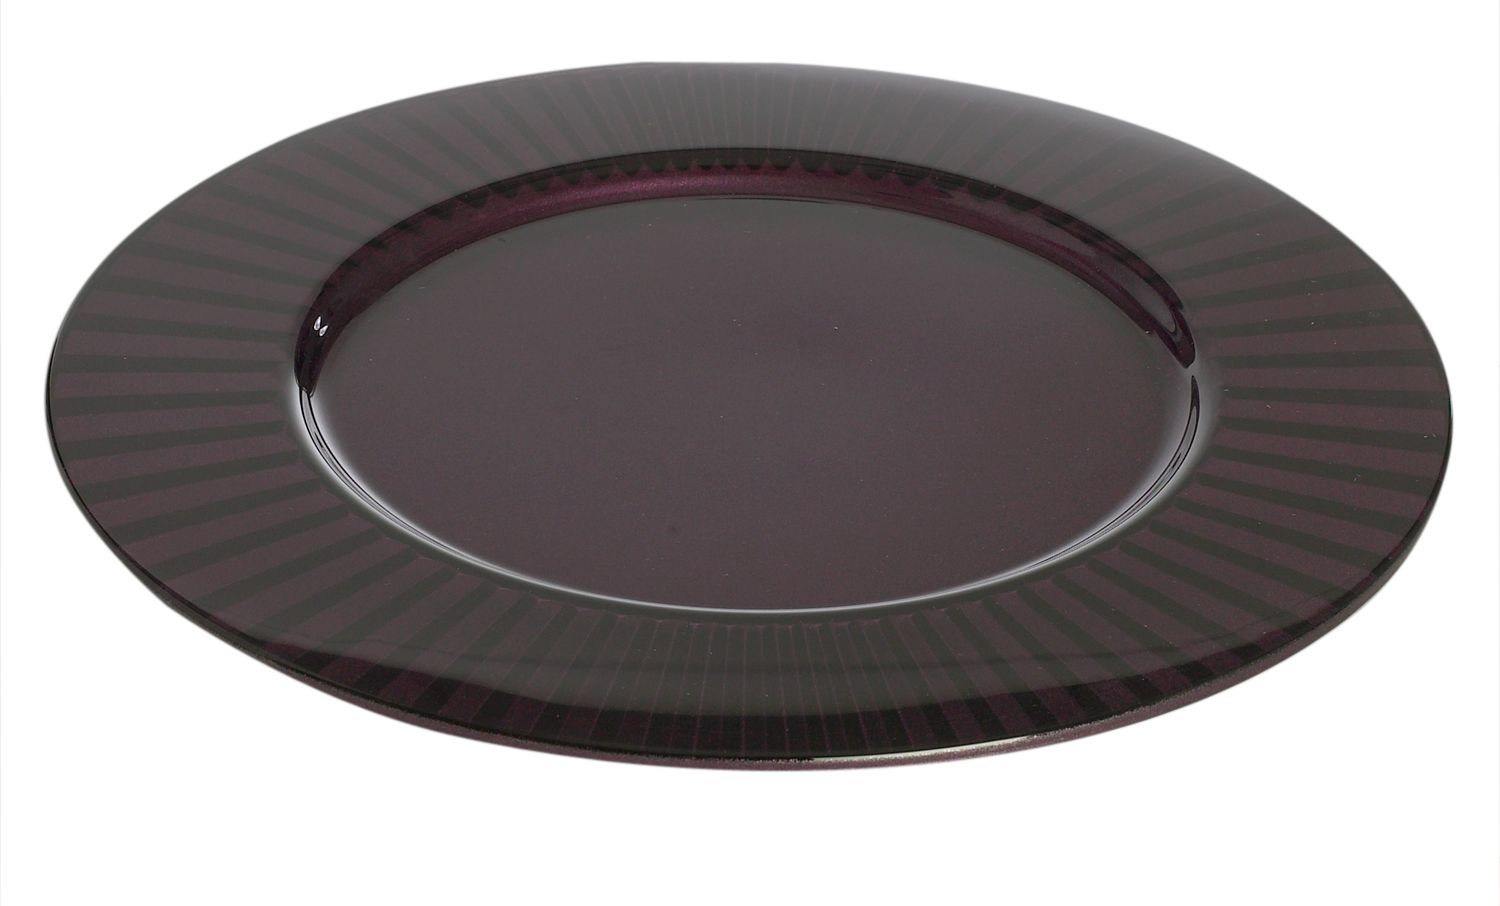 Linea Diva purple coloured glass charger